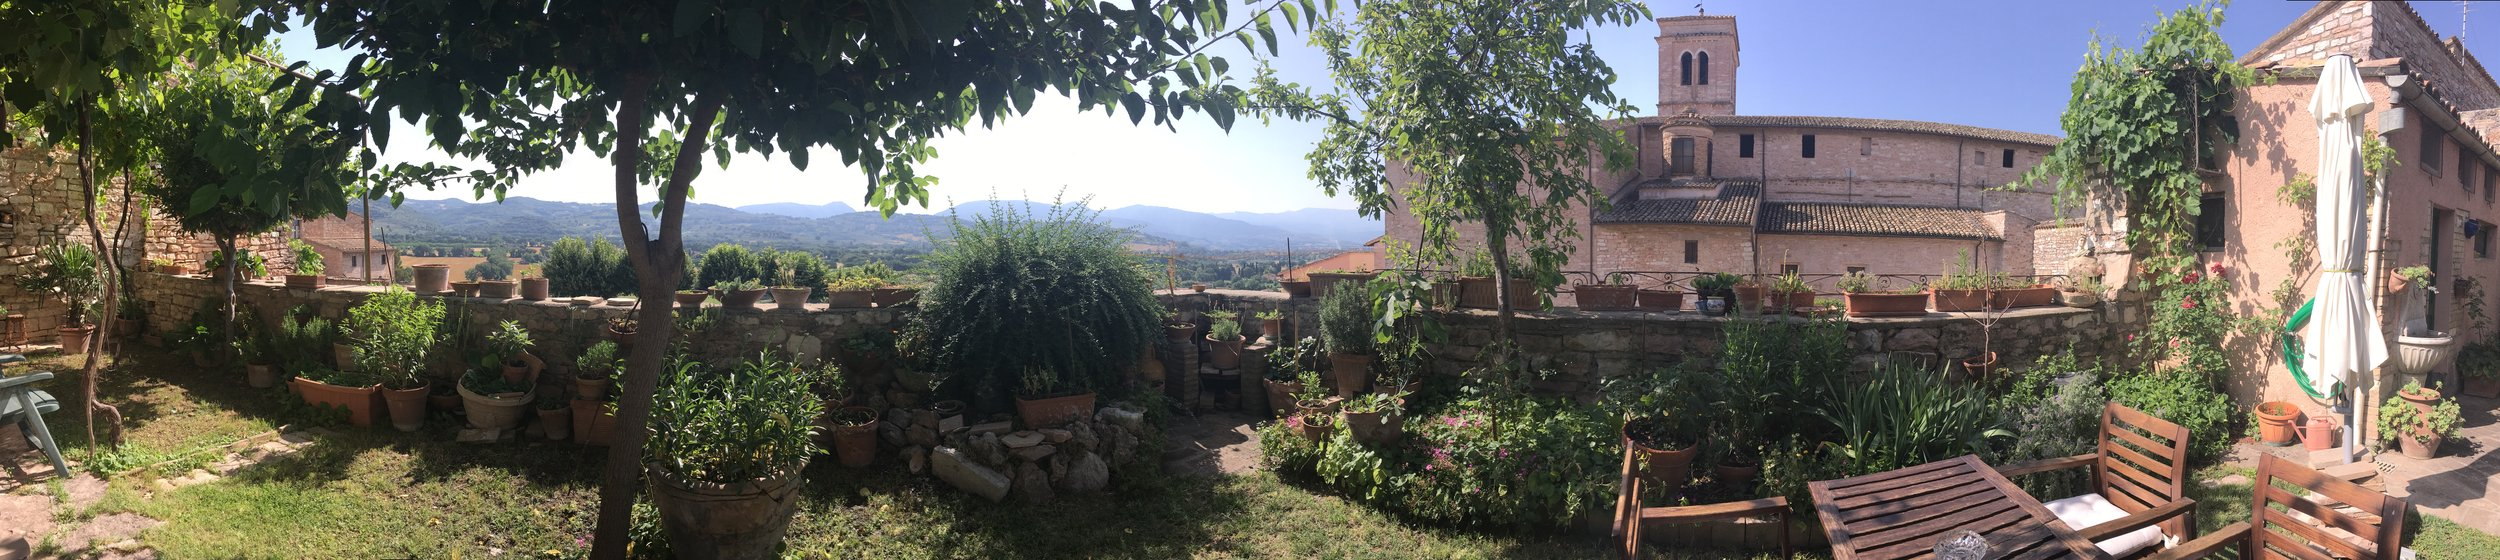 View from our garden in Spello, Umbria